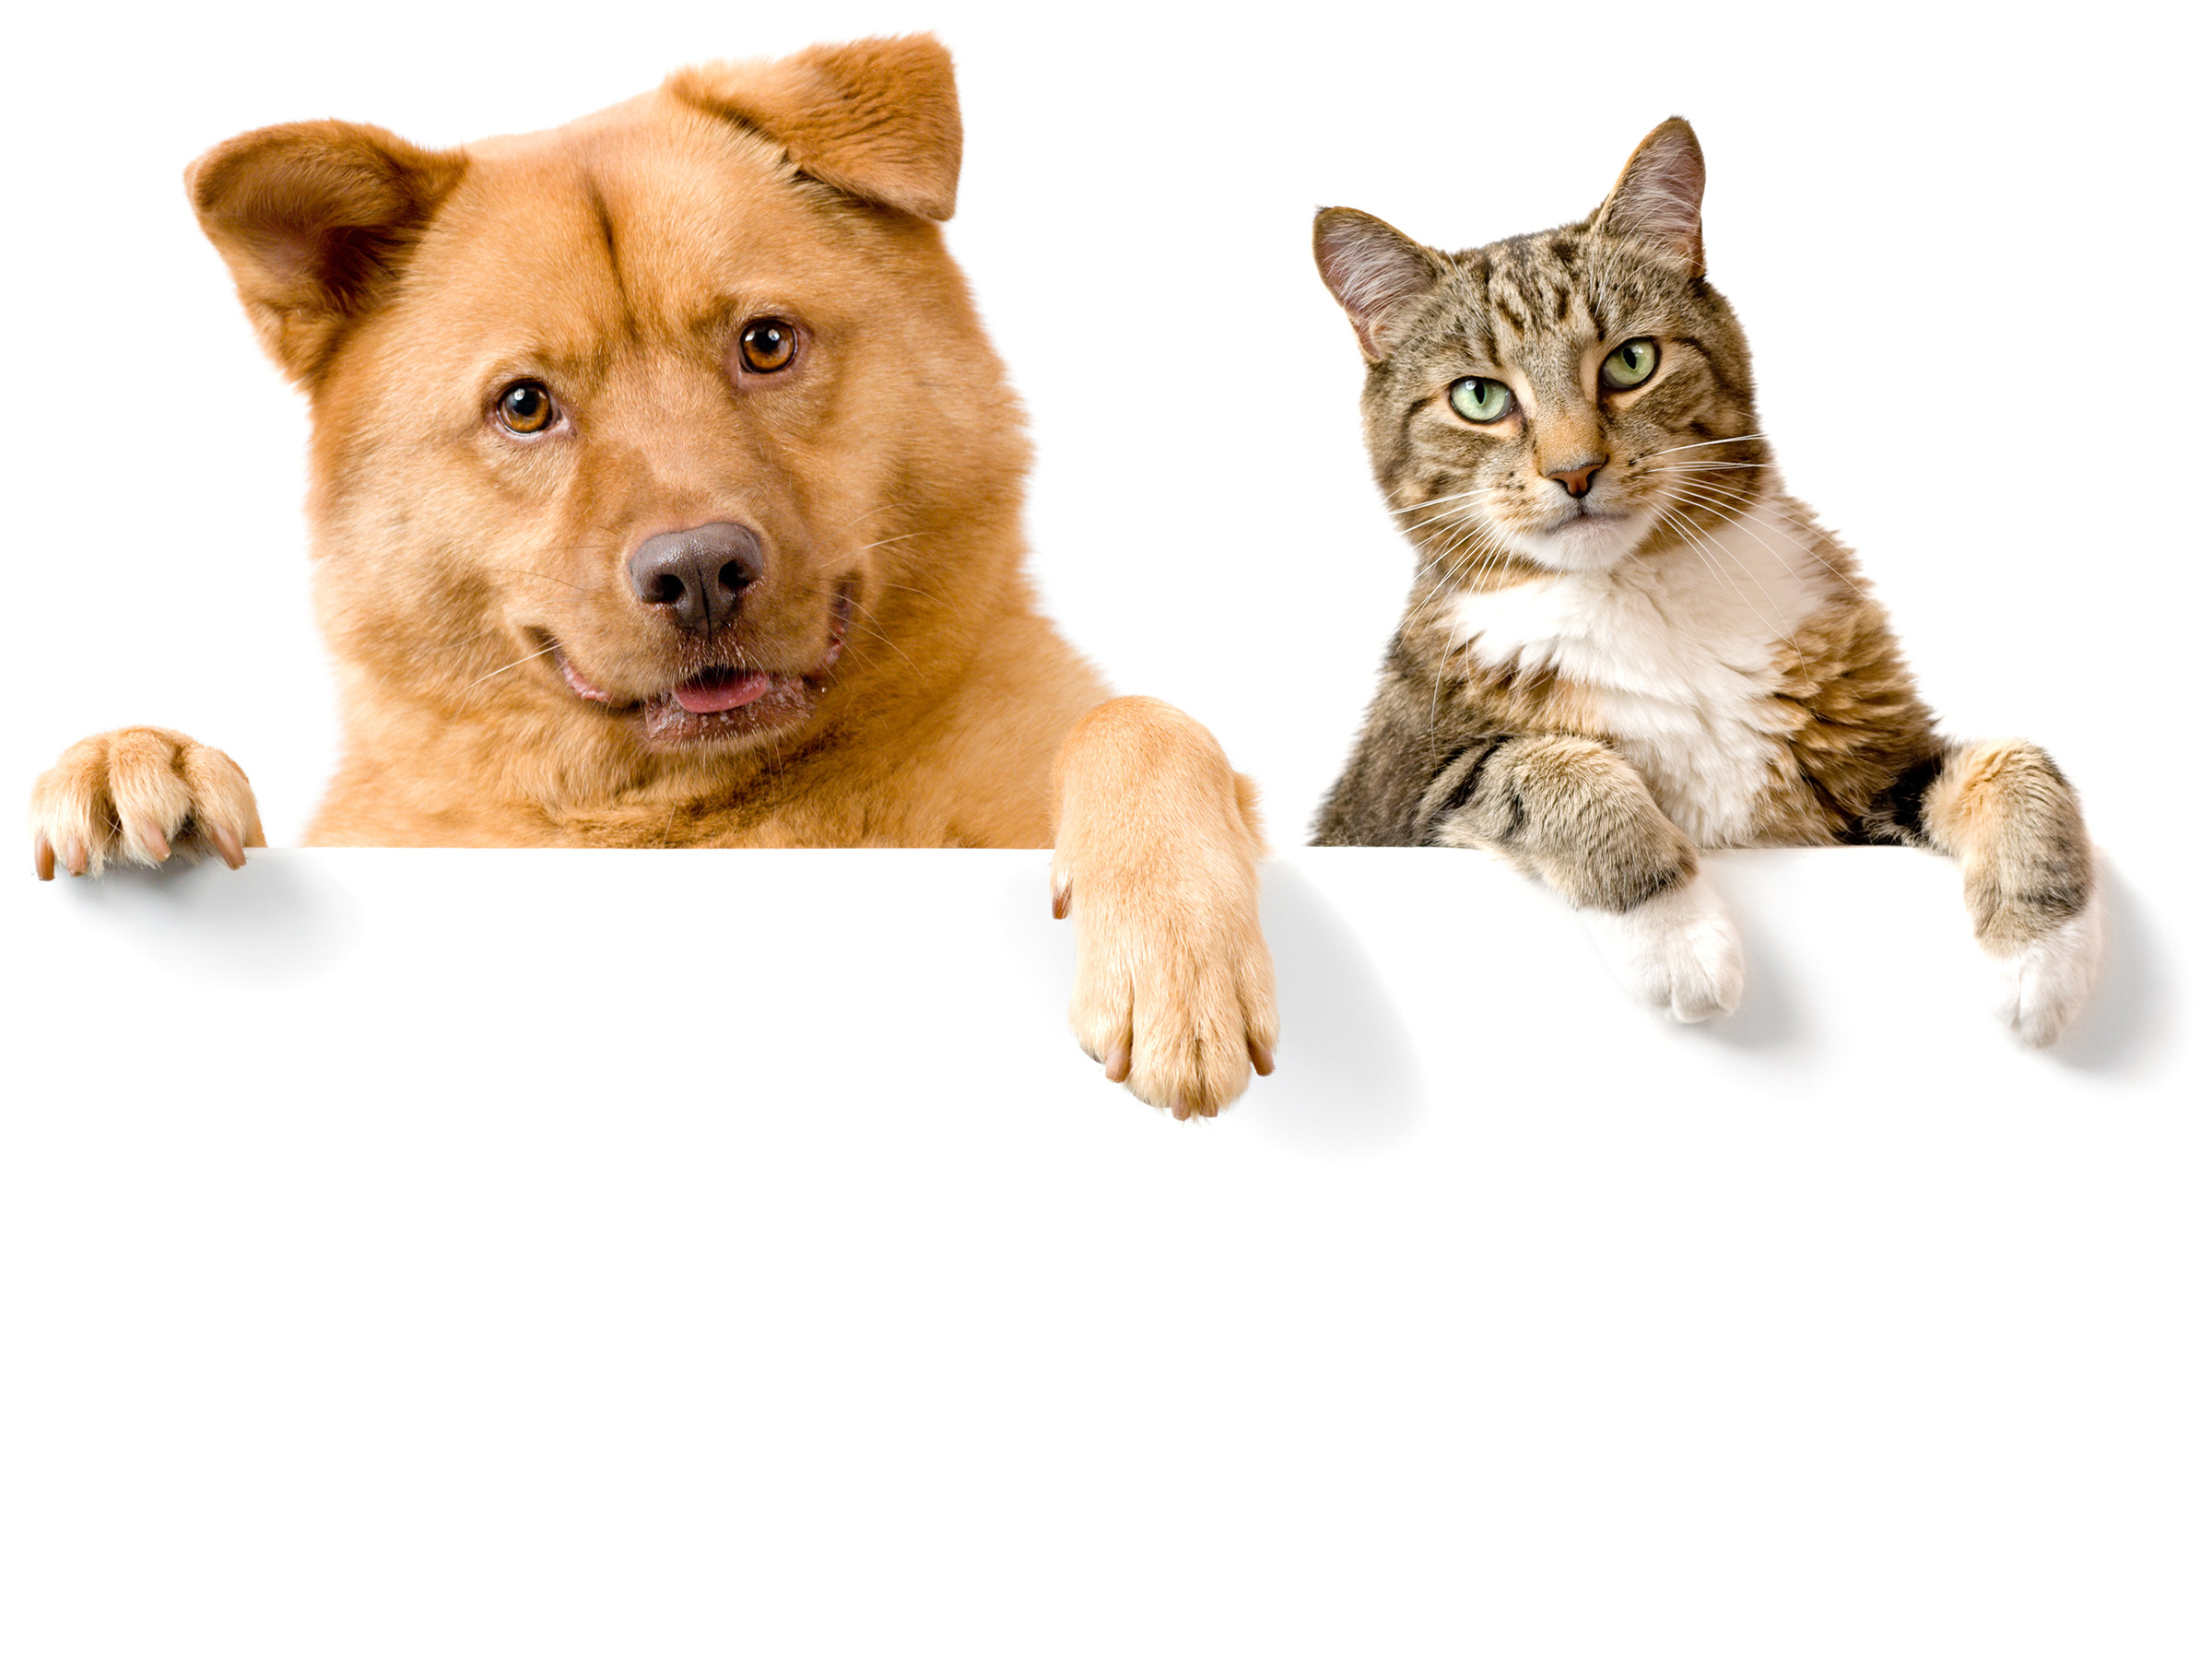 2400x1800 Dog And Cat Wallpaper Background Download Adorable